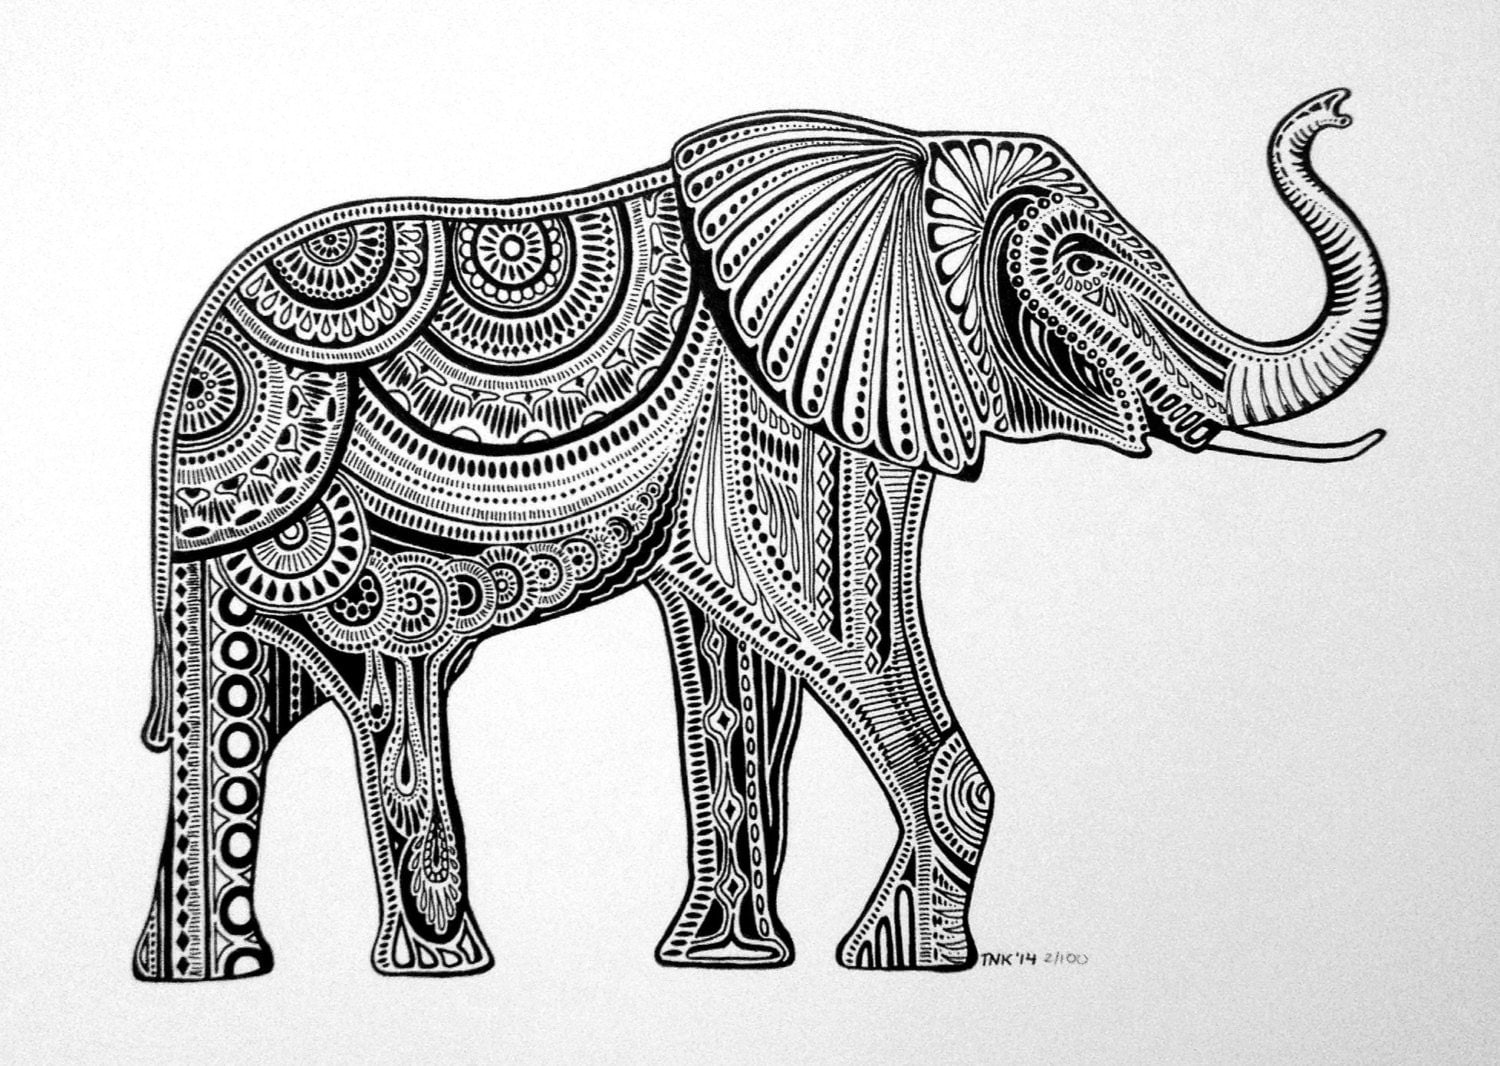 Indian Elephant Trunk Up Drawing | www.imgkid.com - The ...